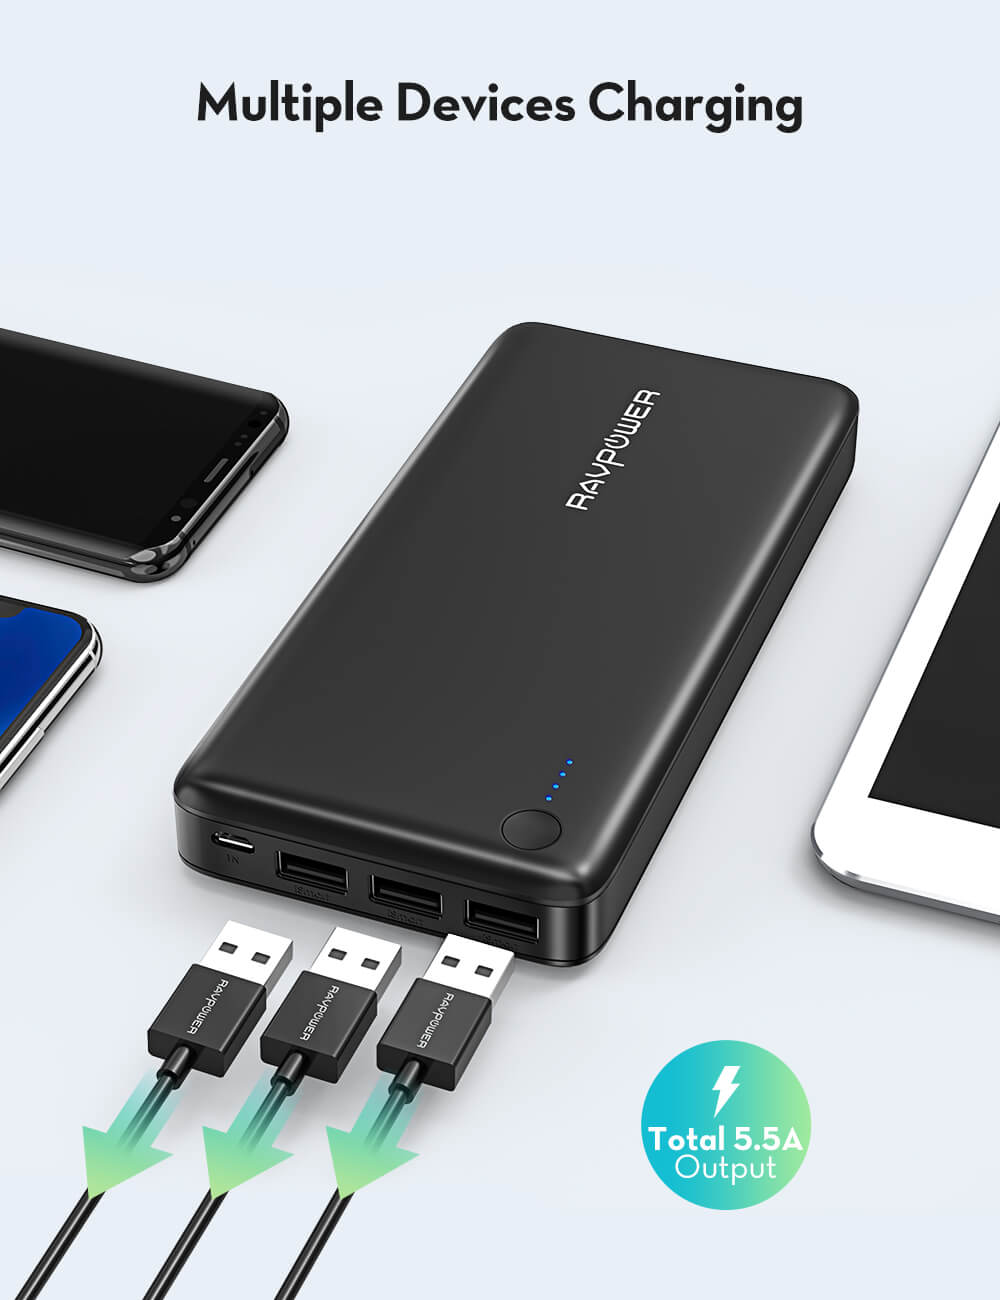 26800mAh 5.5A 3-Port Power Bank